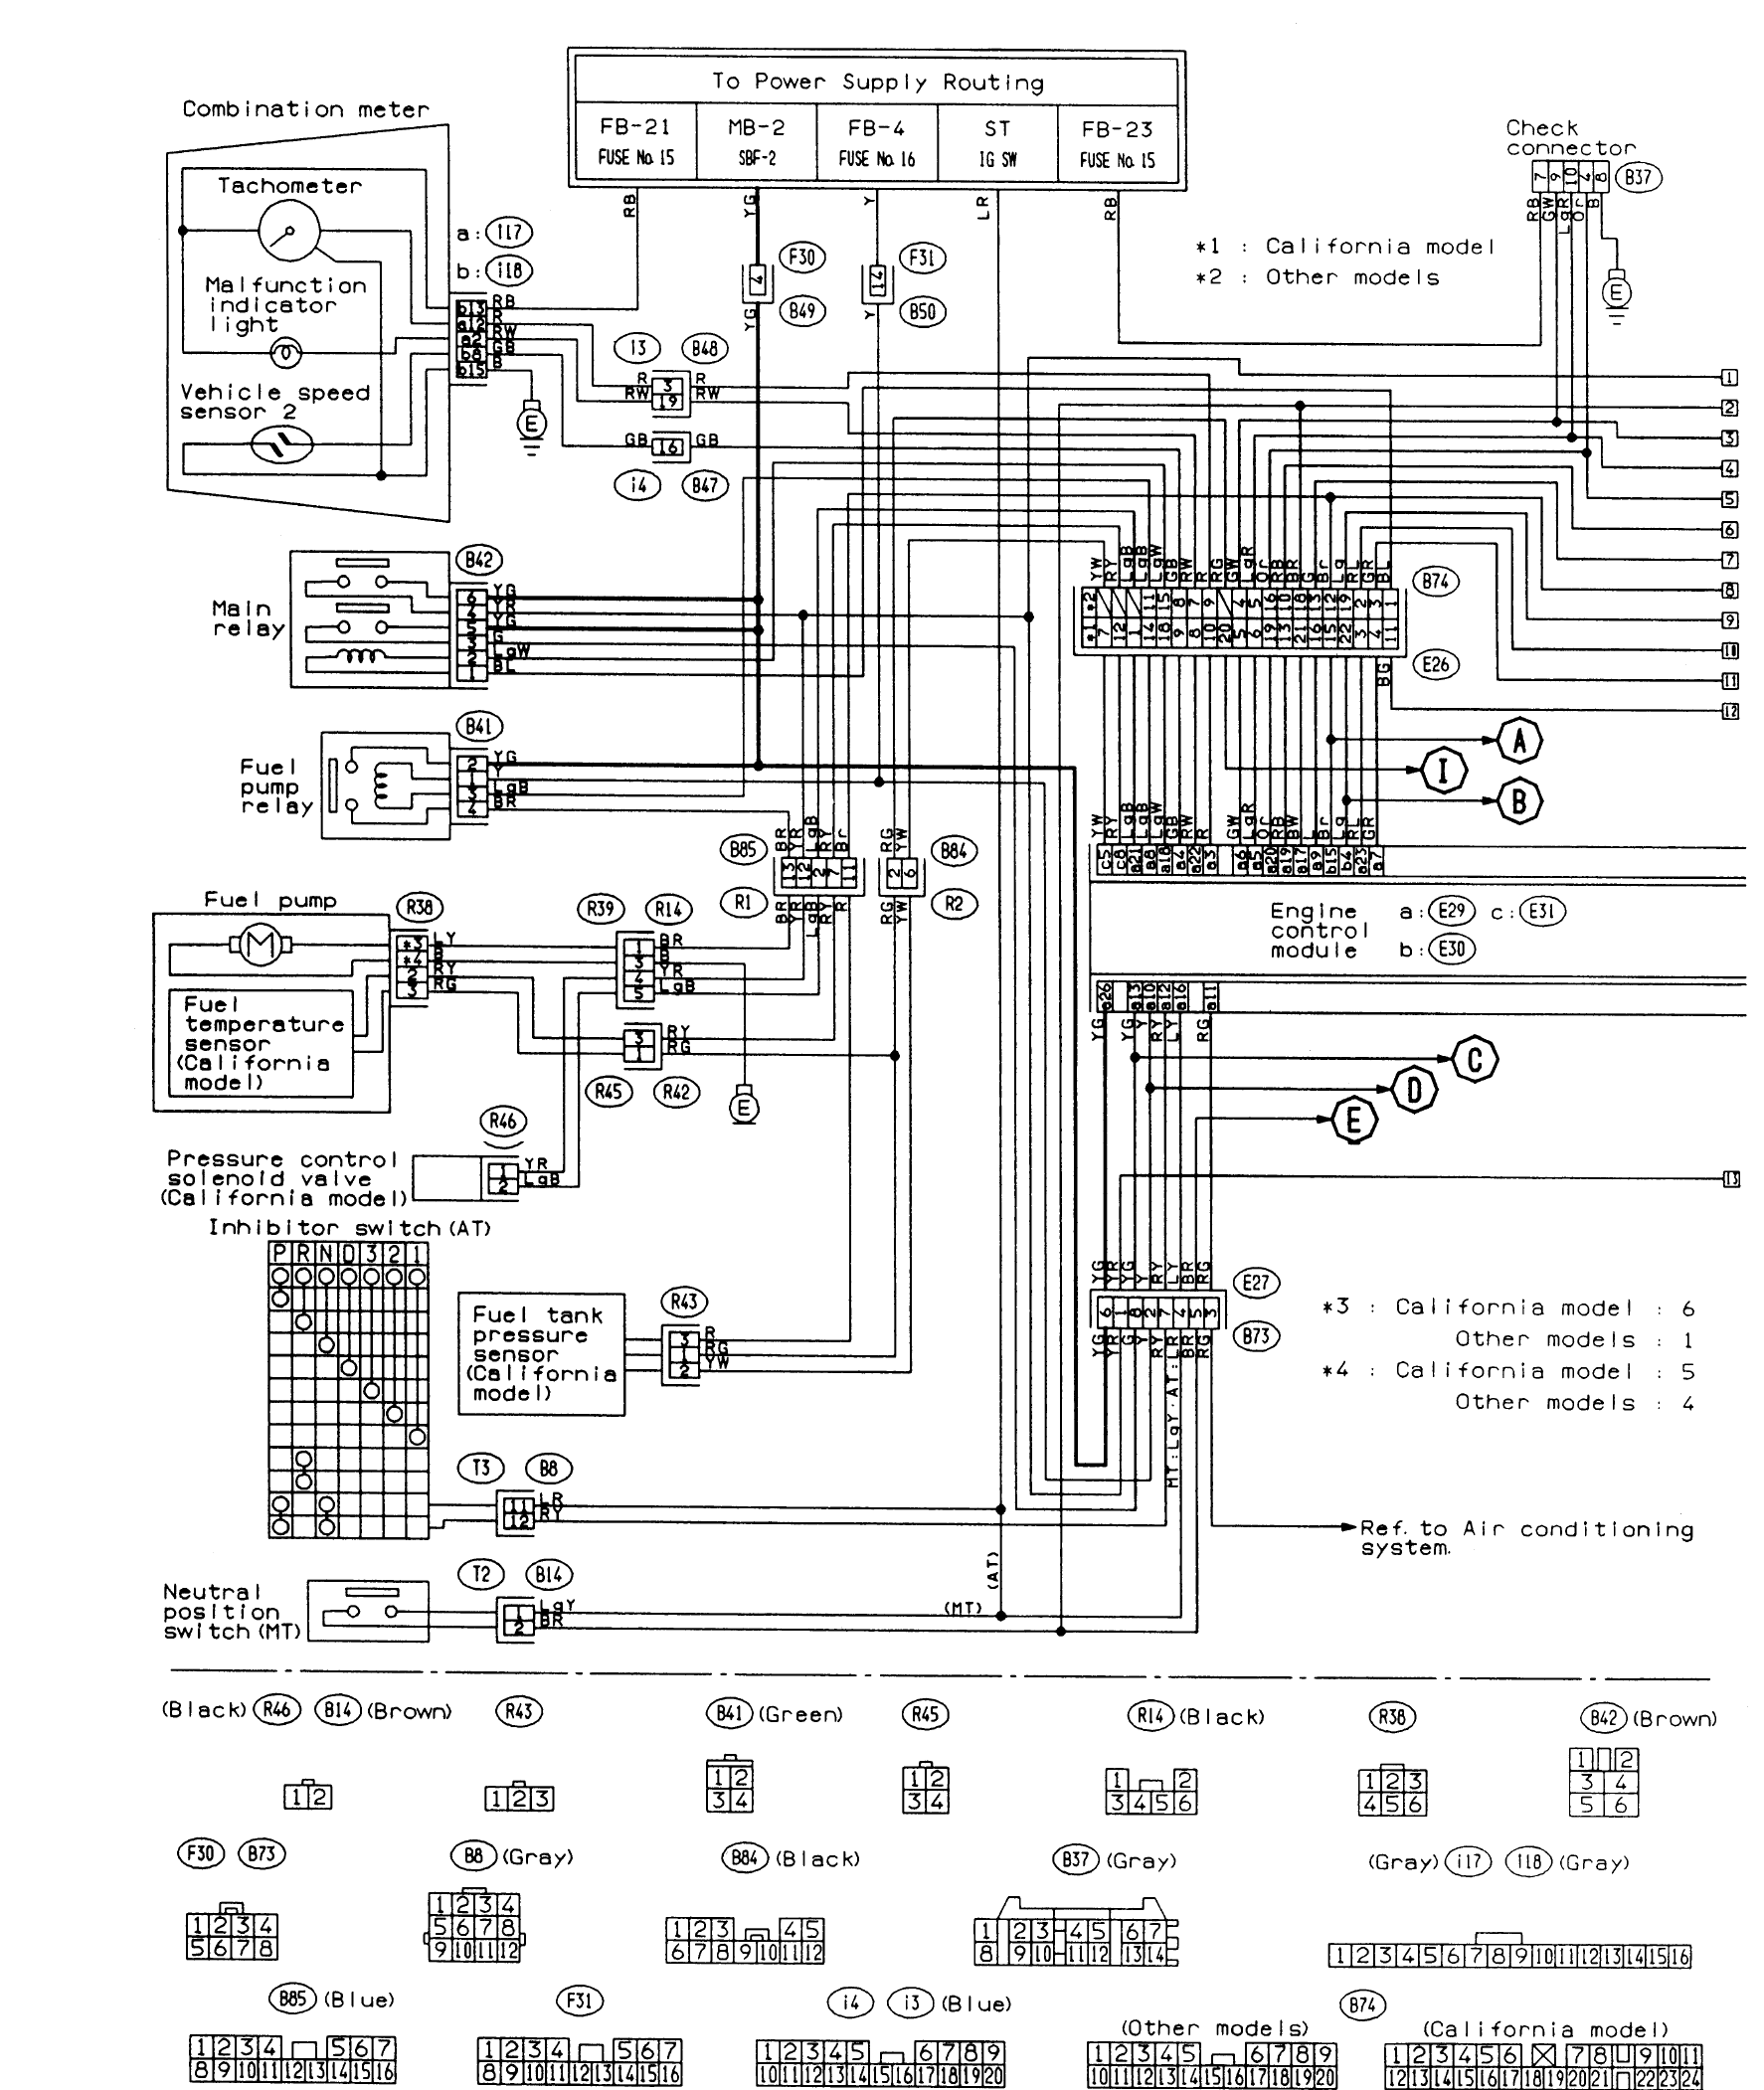 hight resolution of electrical diagram for ac unit in 2009 subaru forester pinouts for 95 impreza 1 8 ecu nasioc